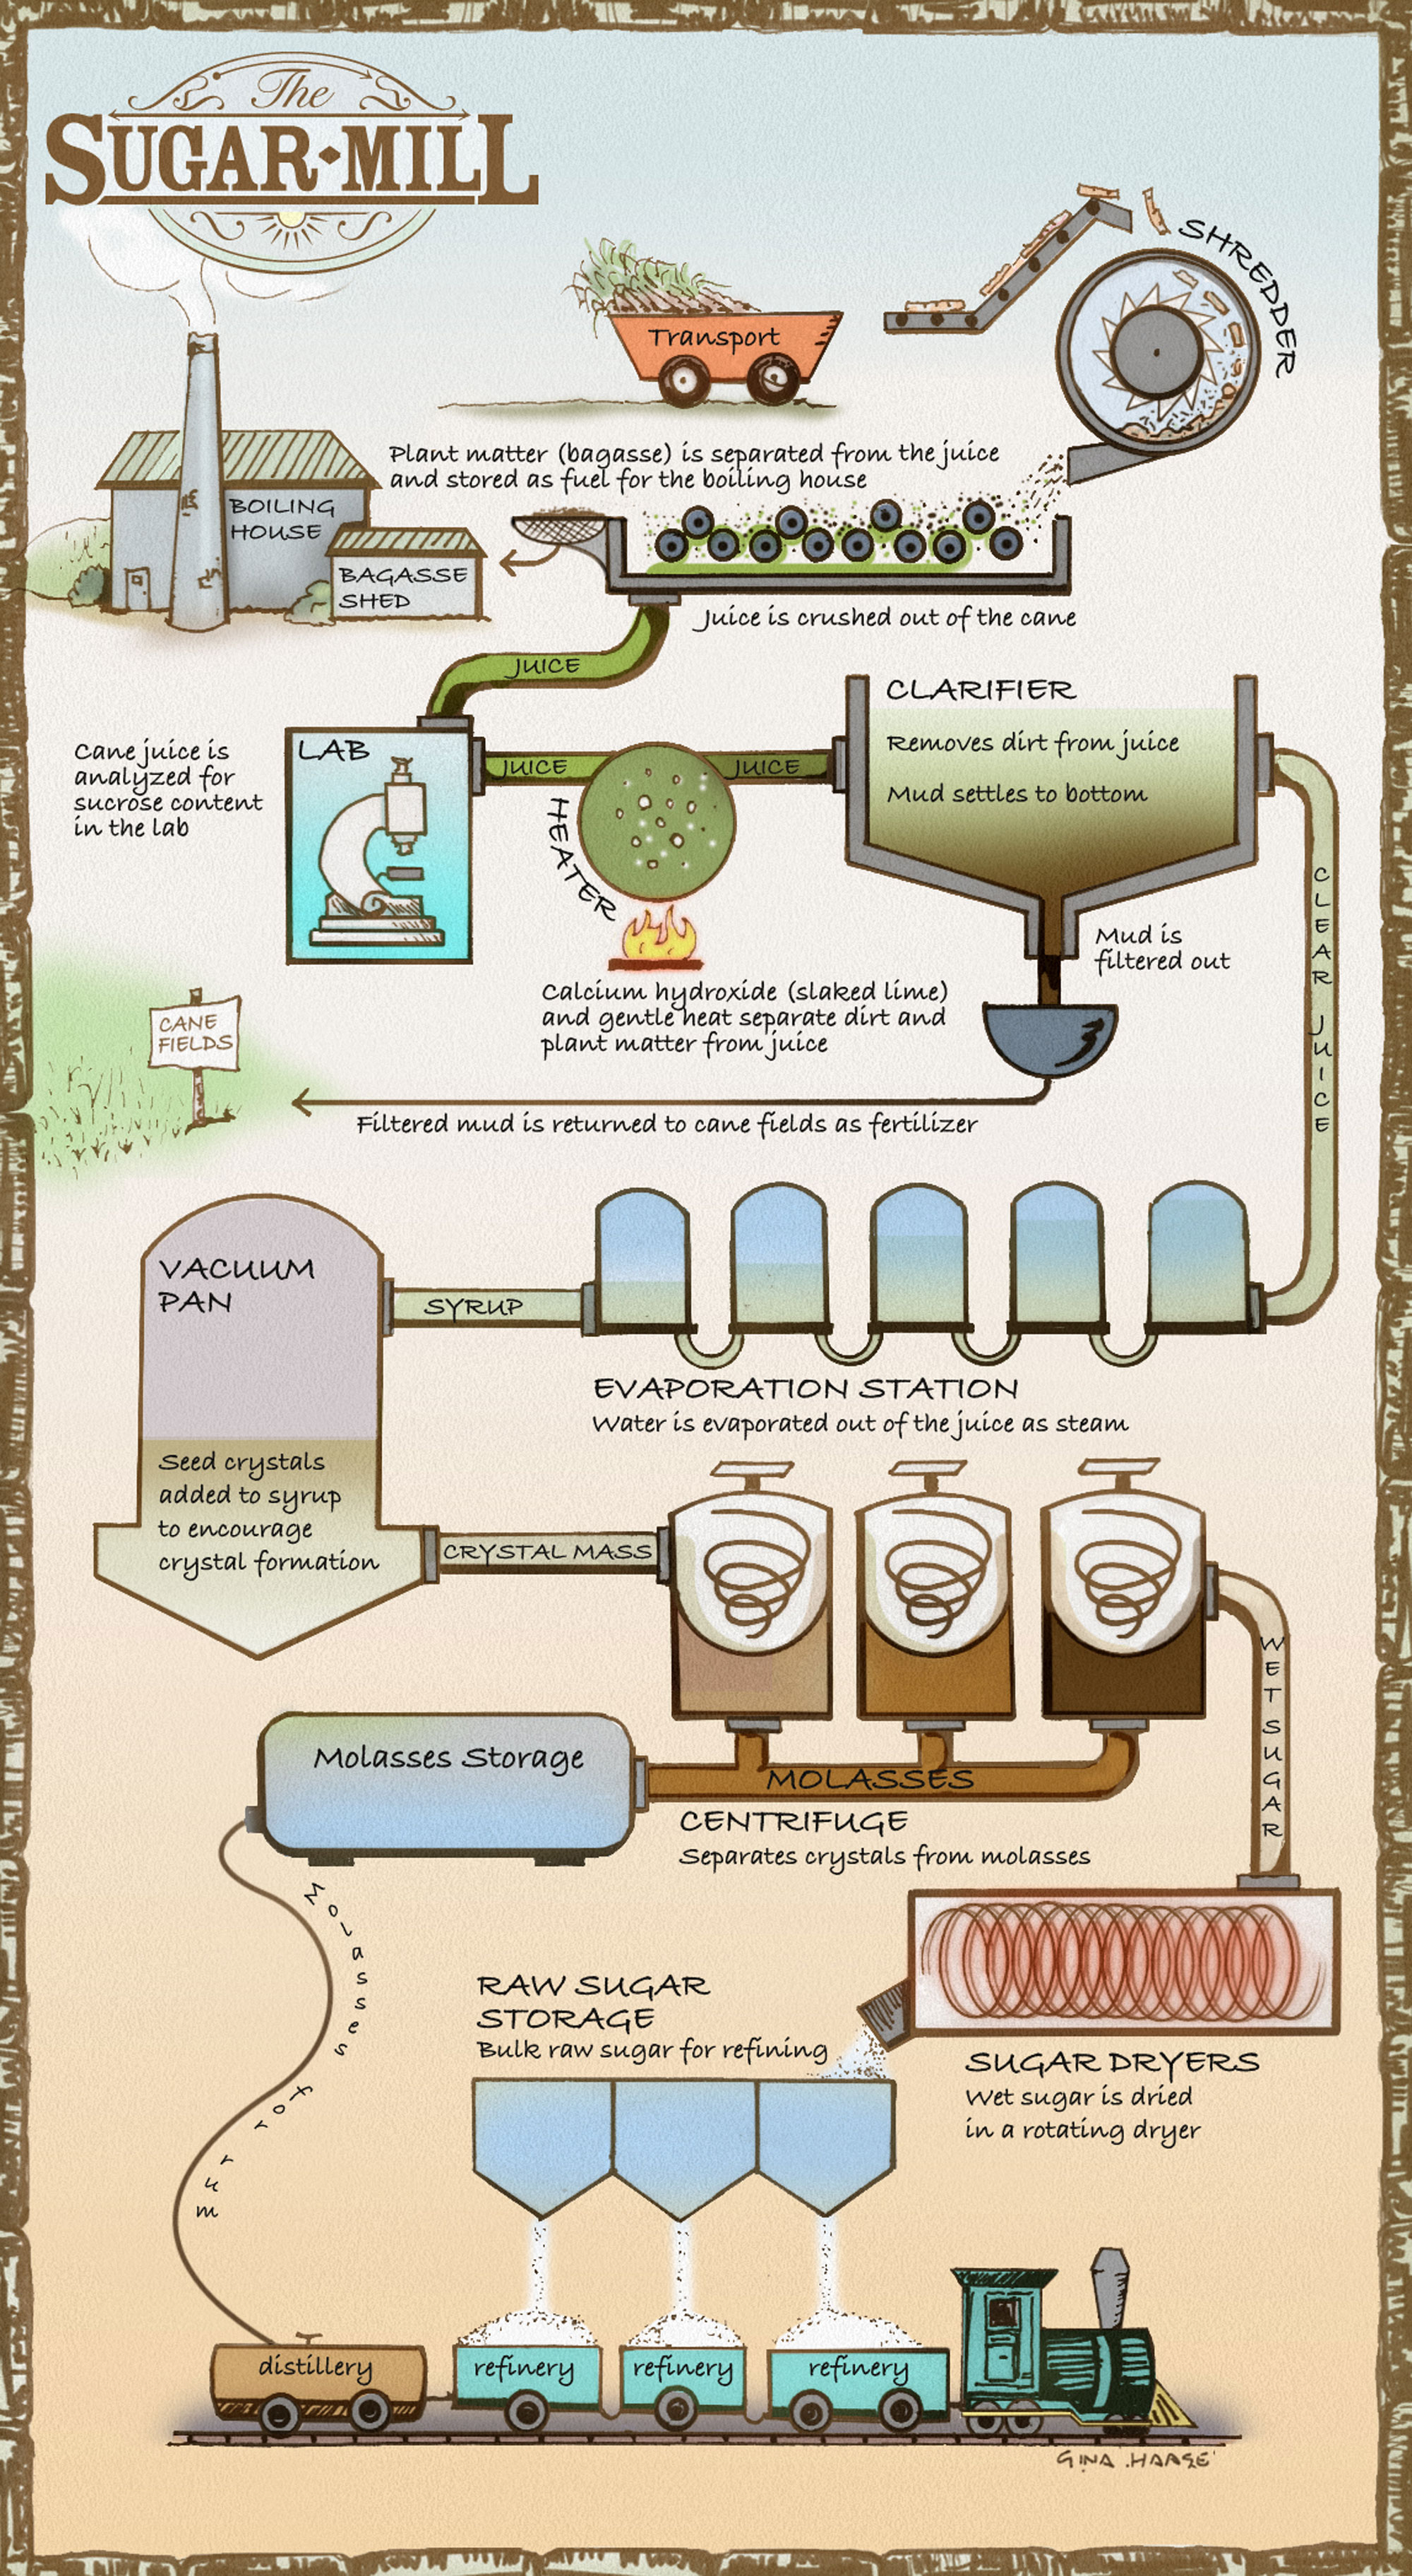 The process of milling sugar. Illustration by Gina Haase.